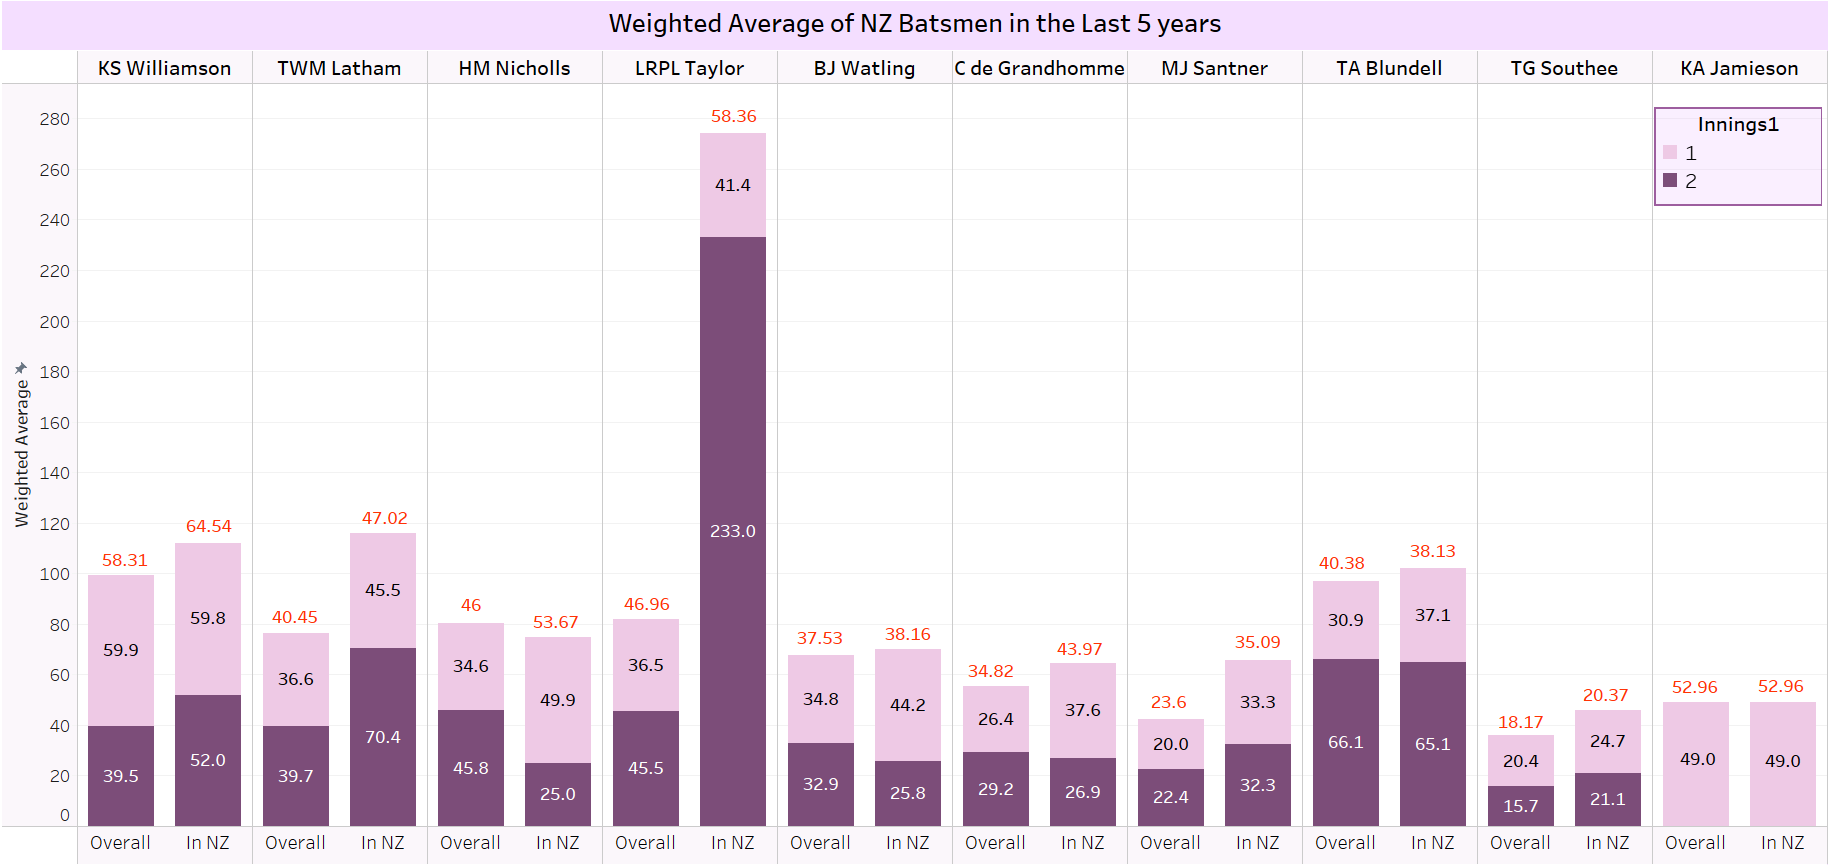 Weighted Batting Averages of New Zealand Batsmen in the last 5 years